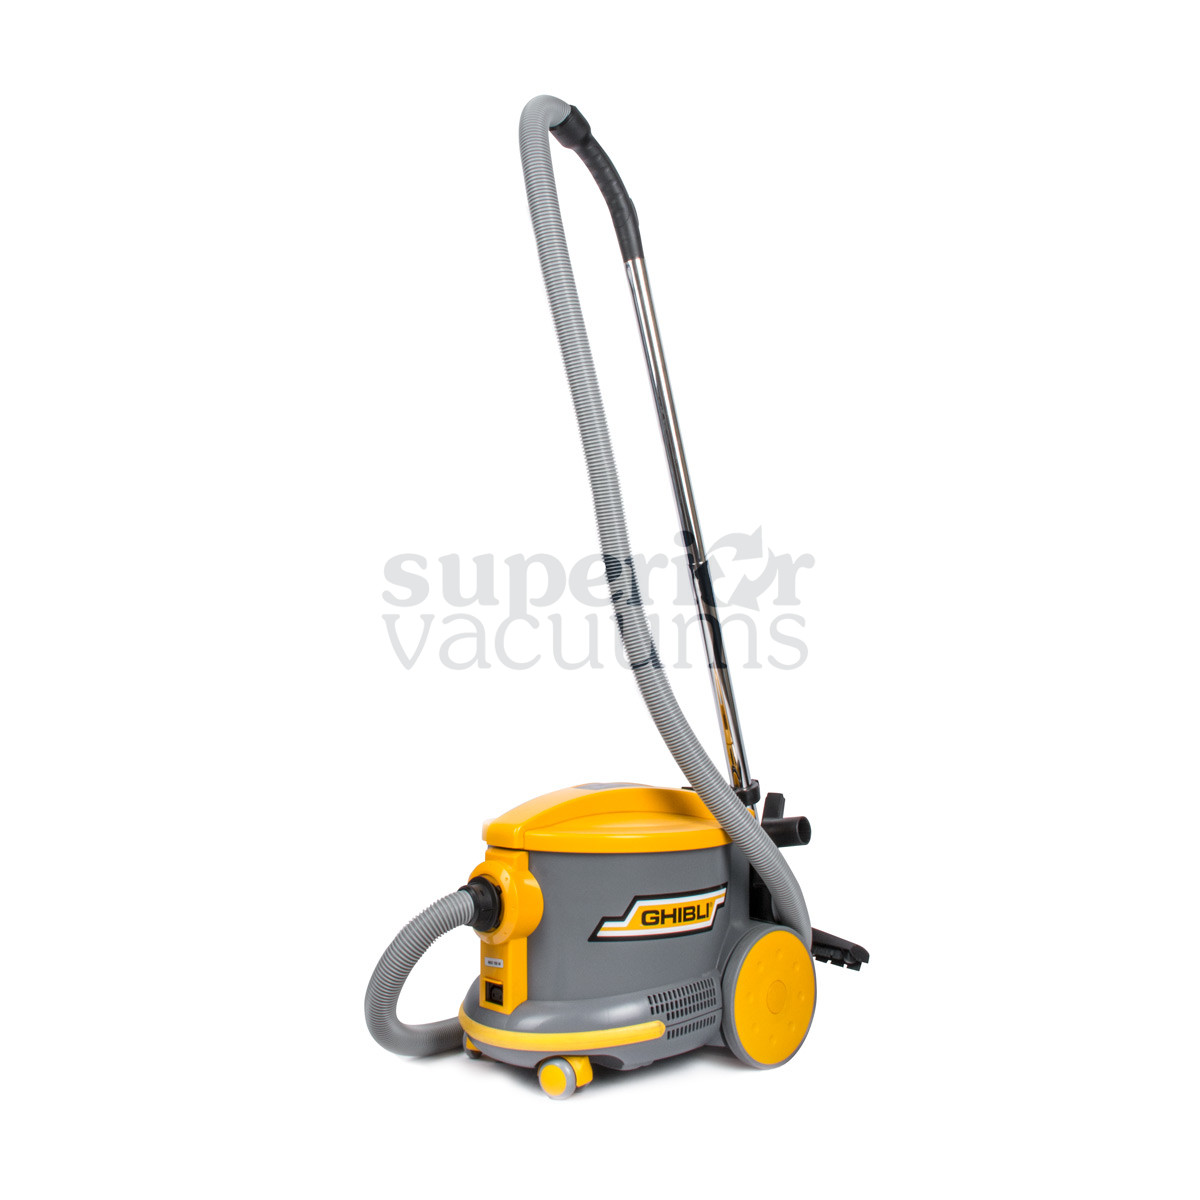 "As6 4 Gallon Dry Canister Vacuum With Tools Floor Brush Wands Air Hose 2 Blade Receptacle 56 Db 1 1/4"" Hose And Tools 1 Year Warranty"